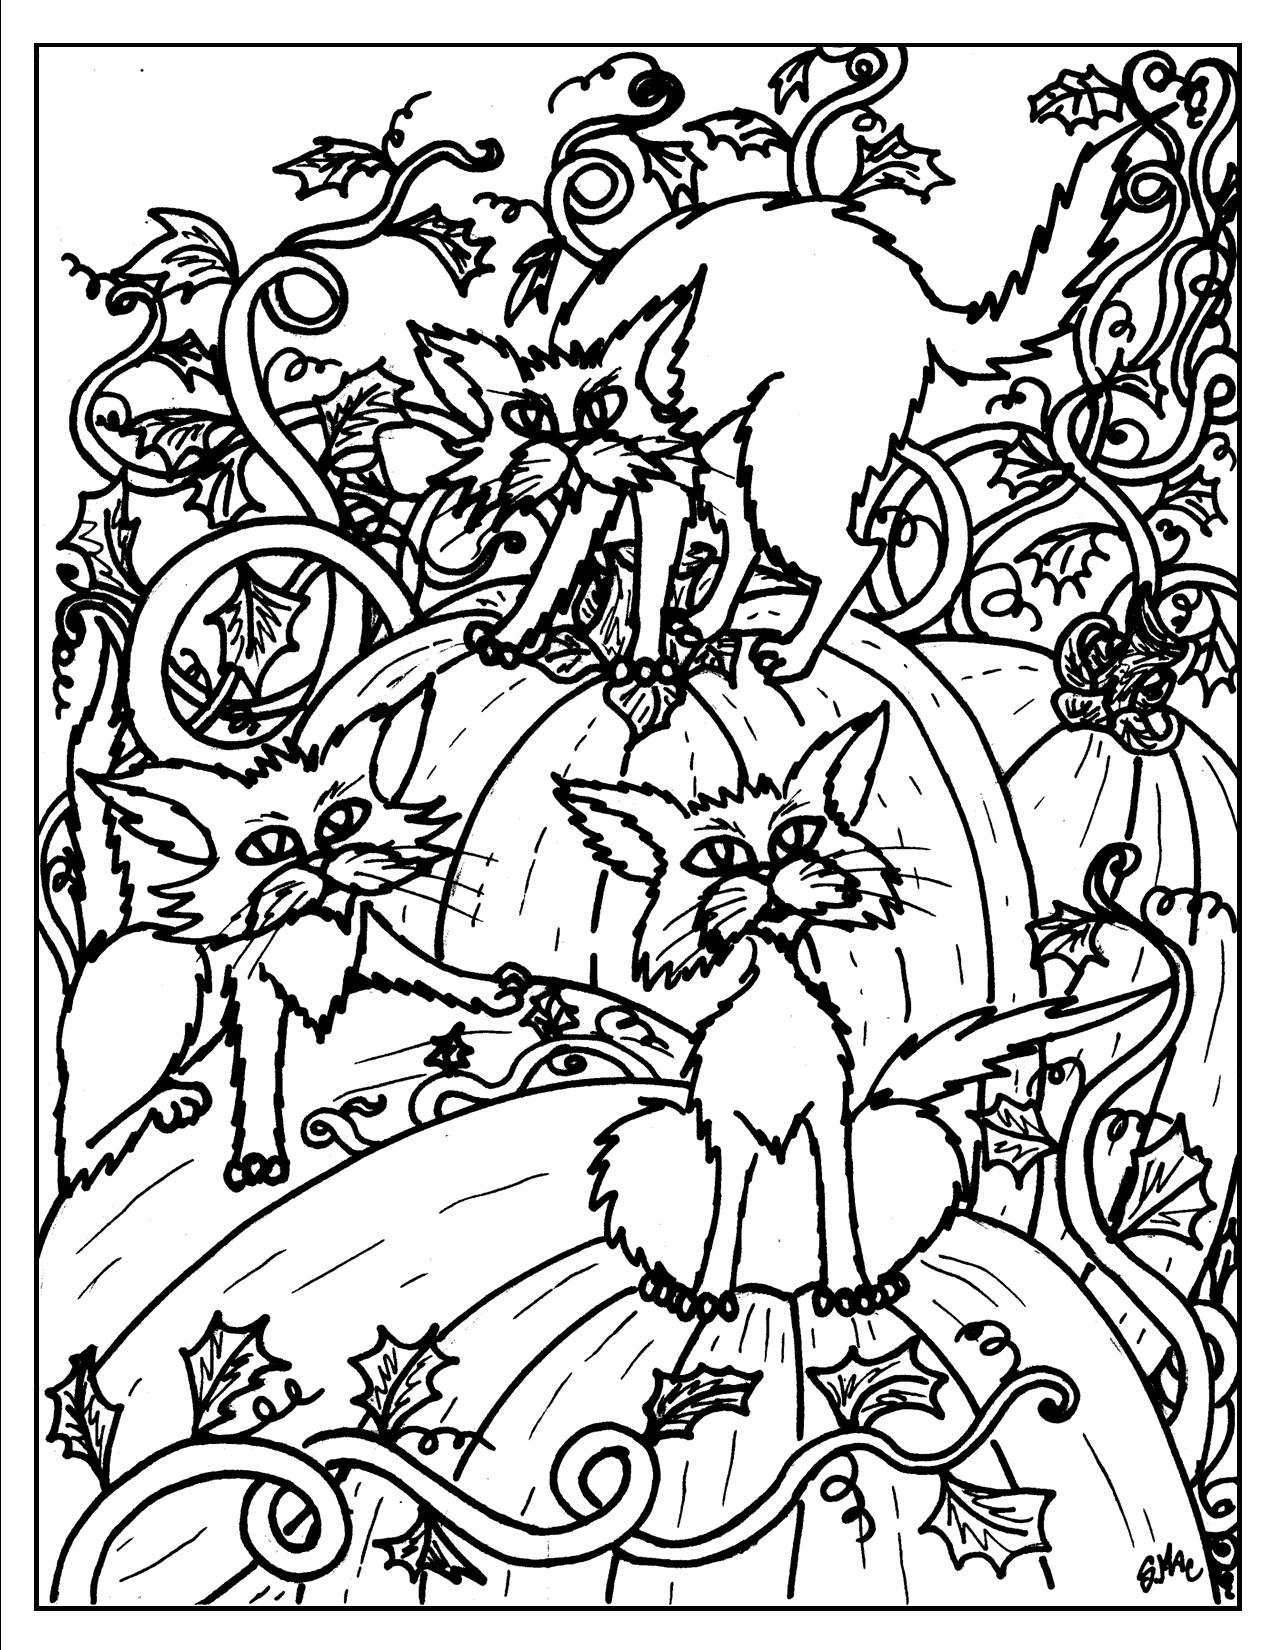 coloring sheets for halloween halloween coloring pages smac39s place to be coloring halloween sheets for